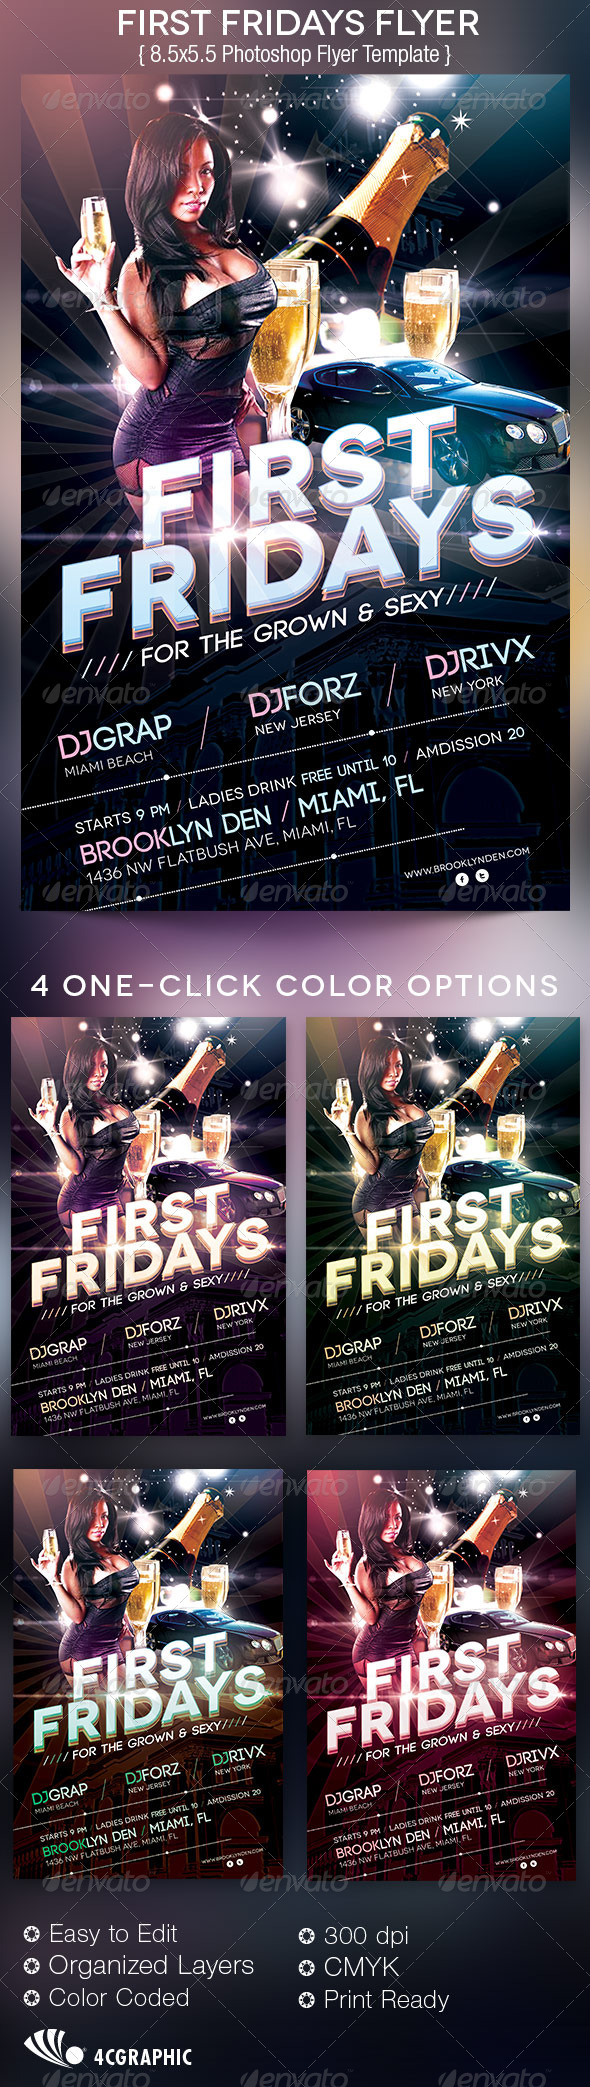 First  Fridays Flyer Template - Clubs & Parties Events